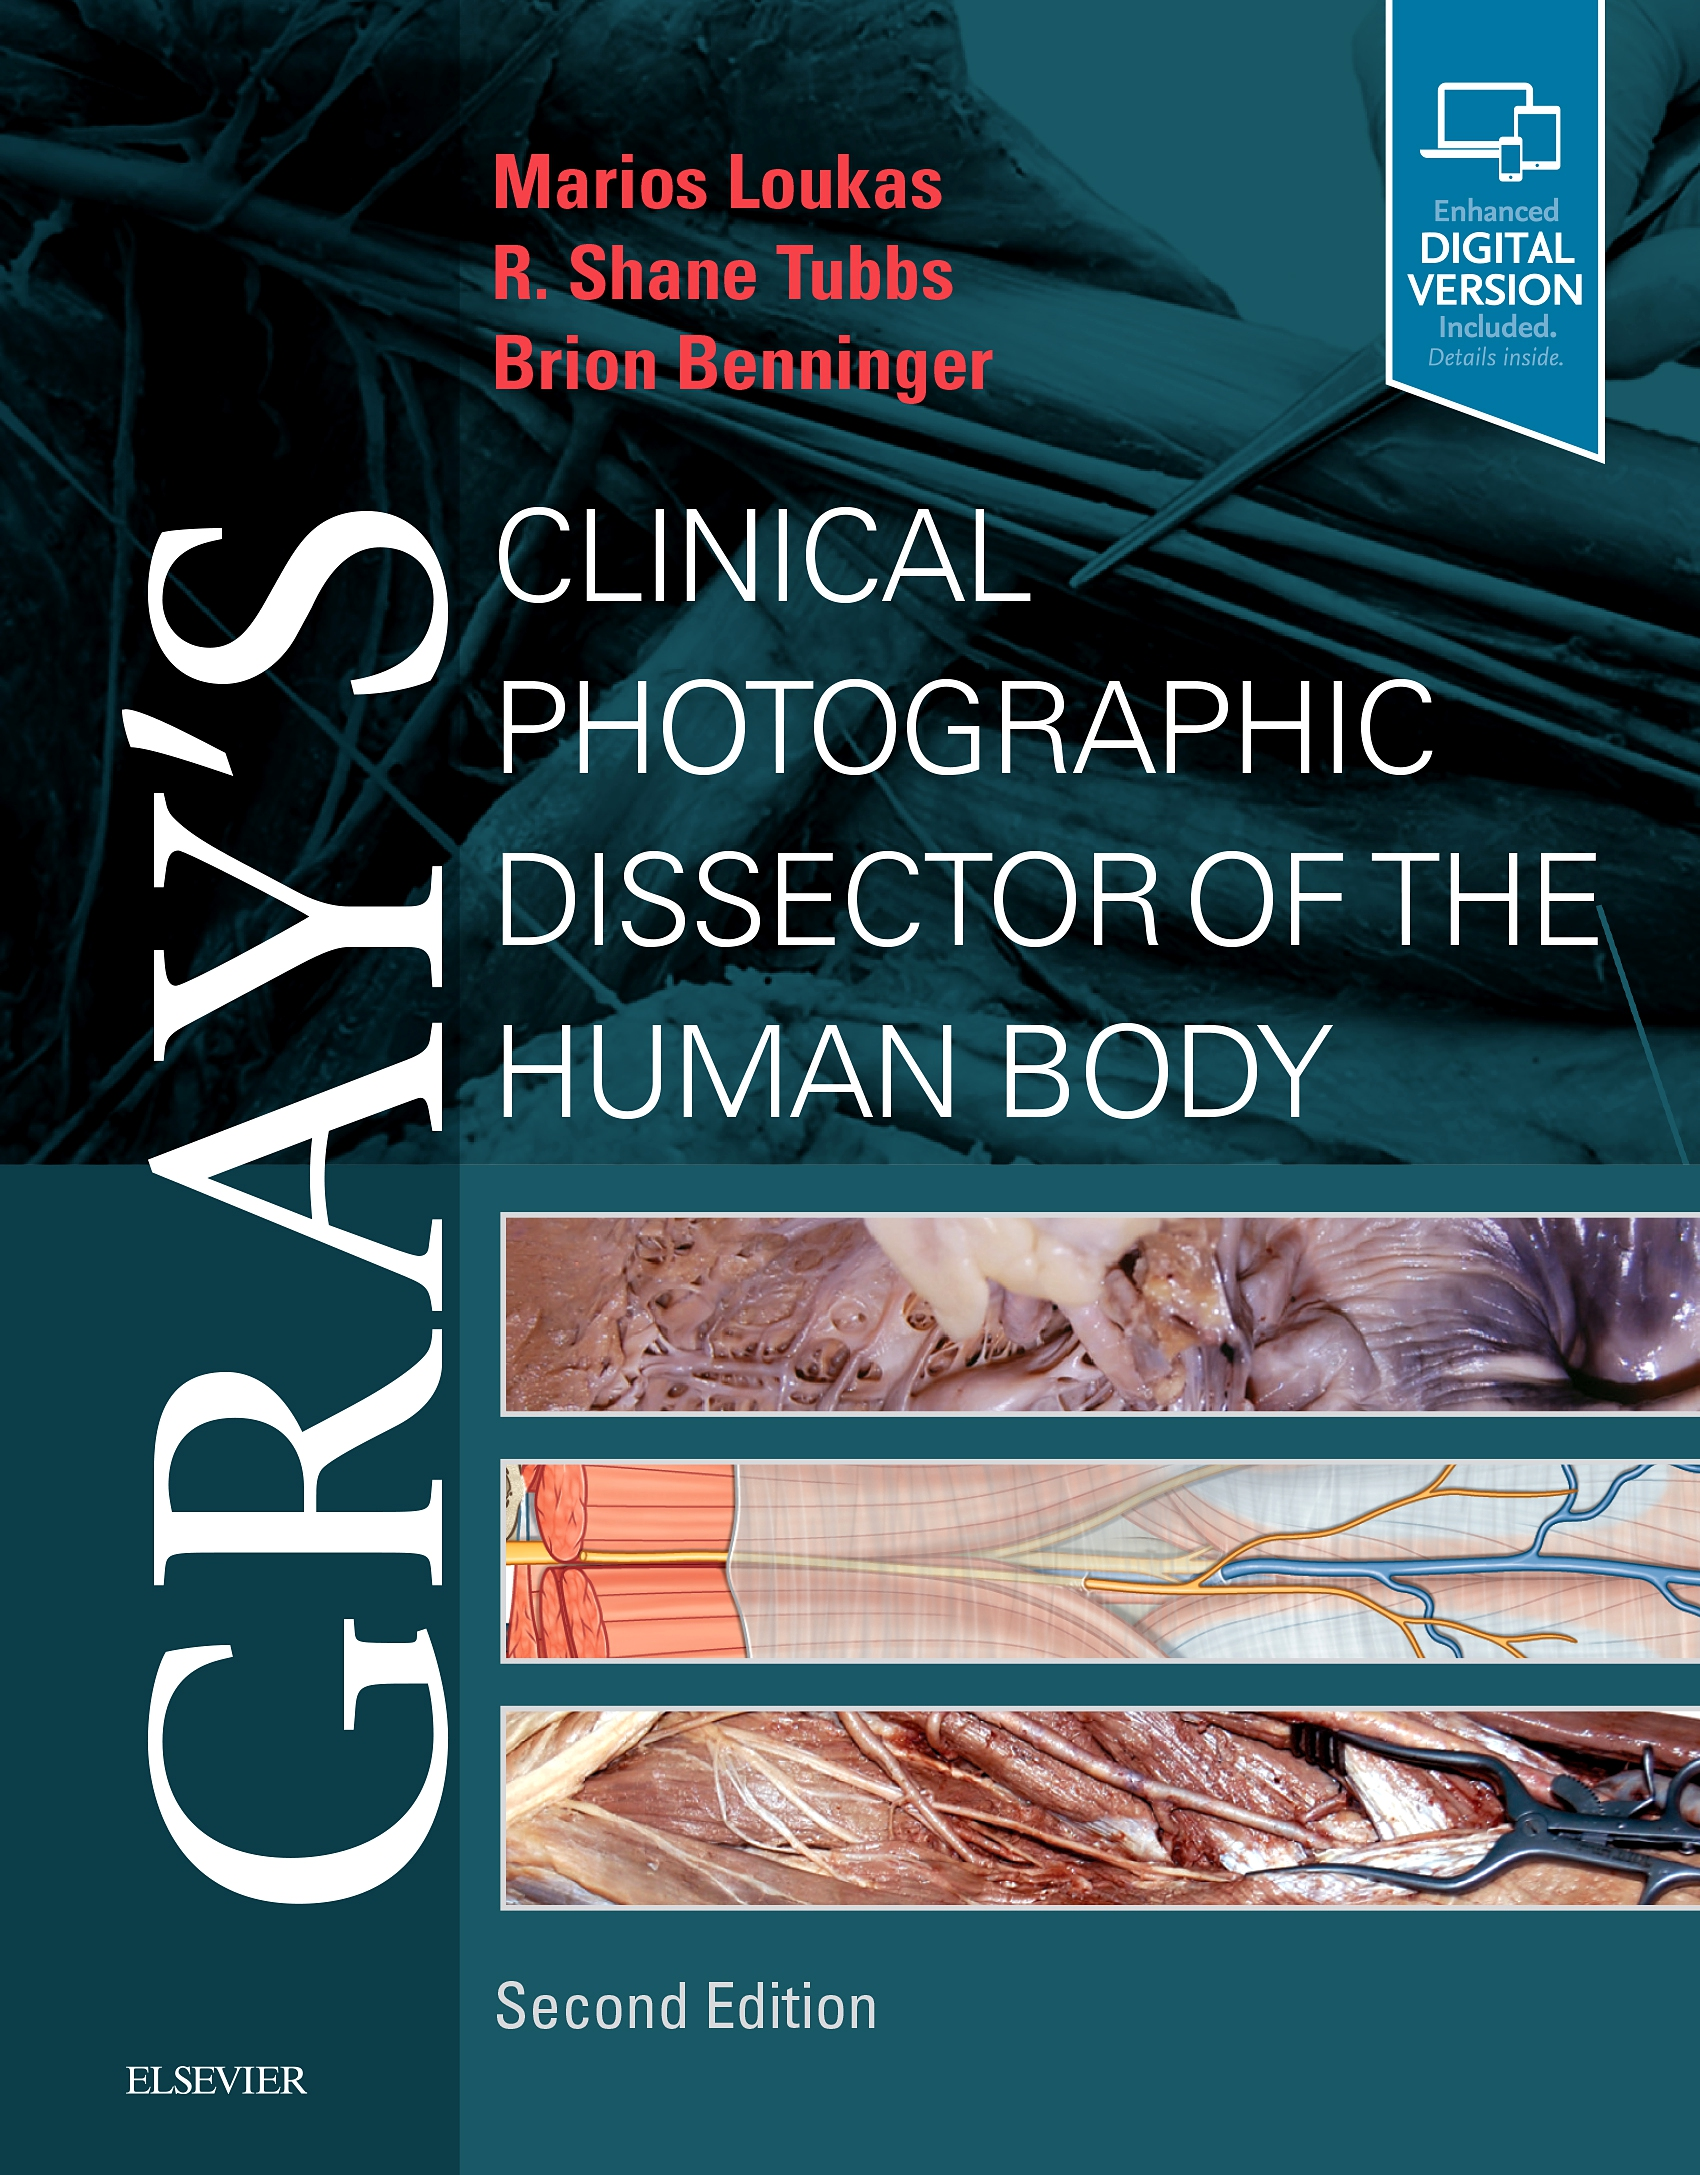 Evolve Resources for Gray's Clinical Photographic Dissector of the Human Body, 2nd Edition